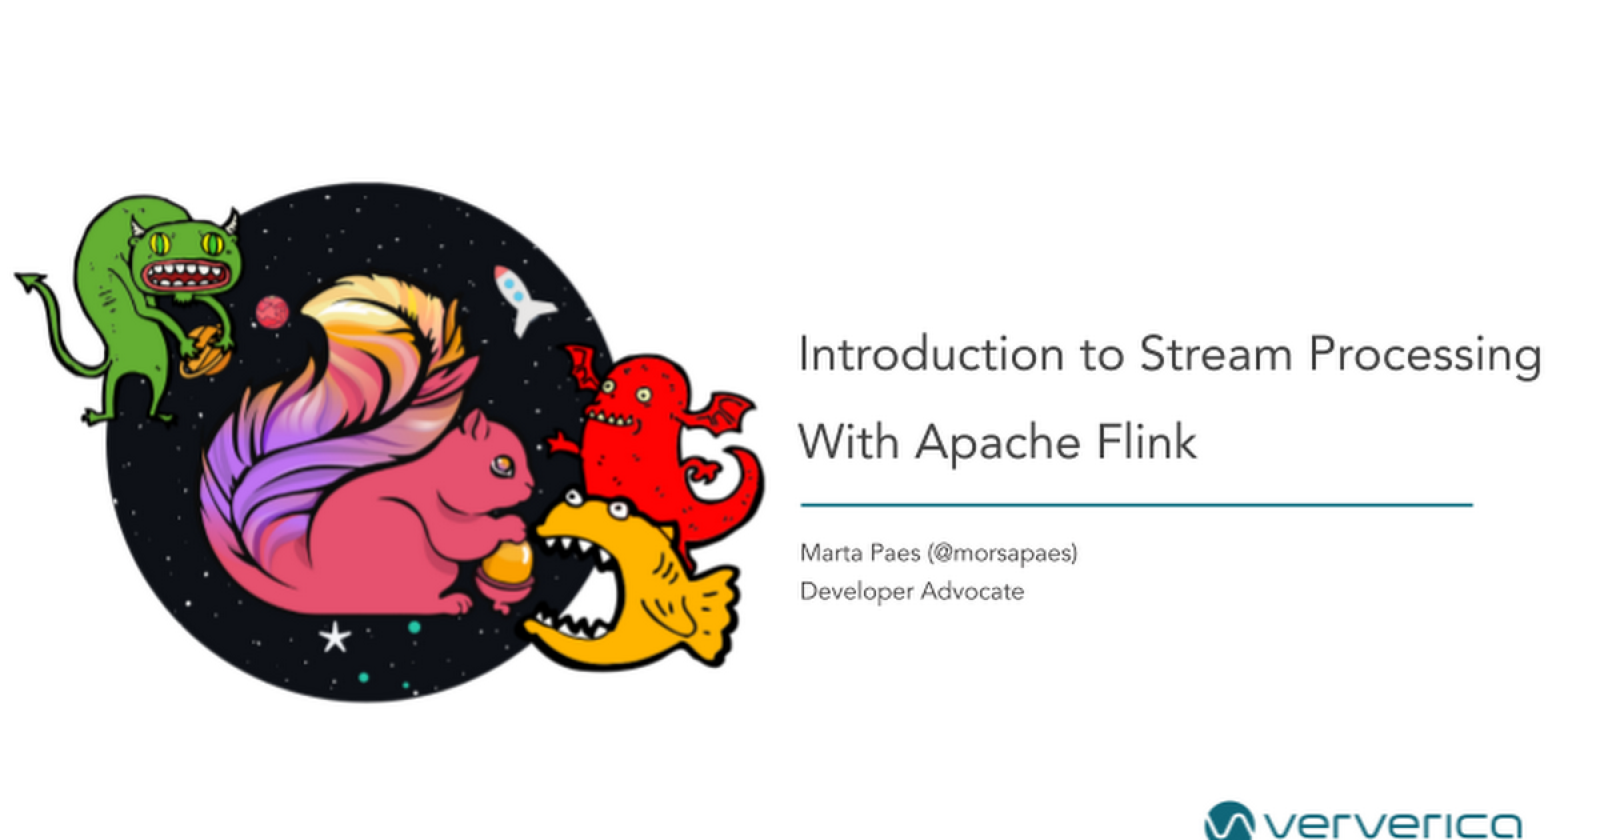 Introduction to Stream Processing with Apache Flink